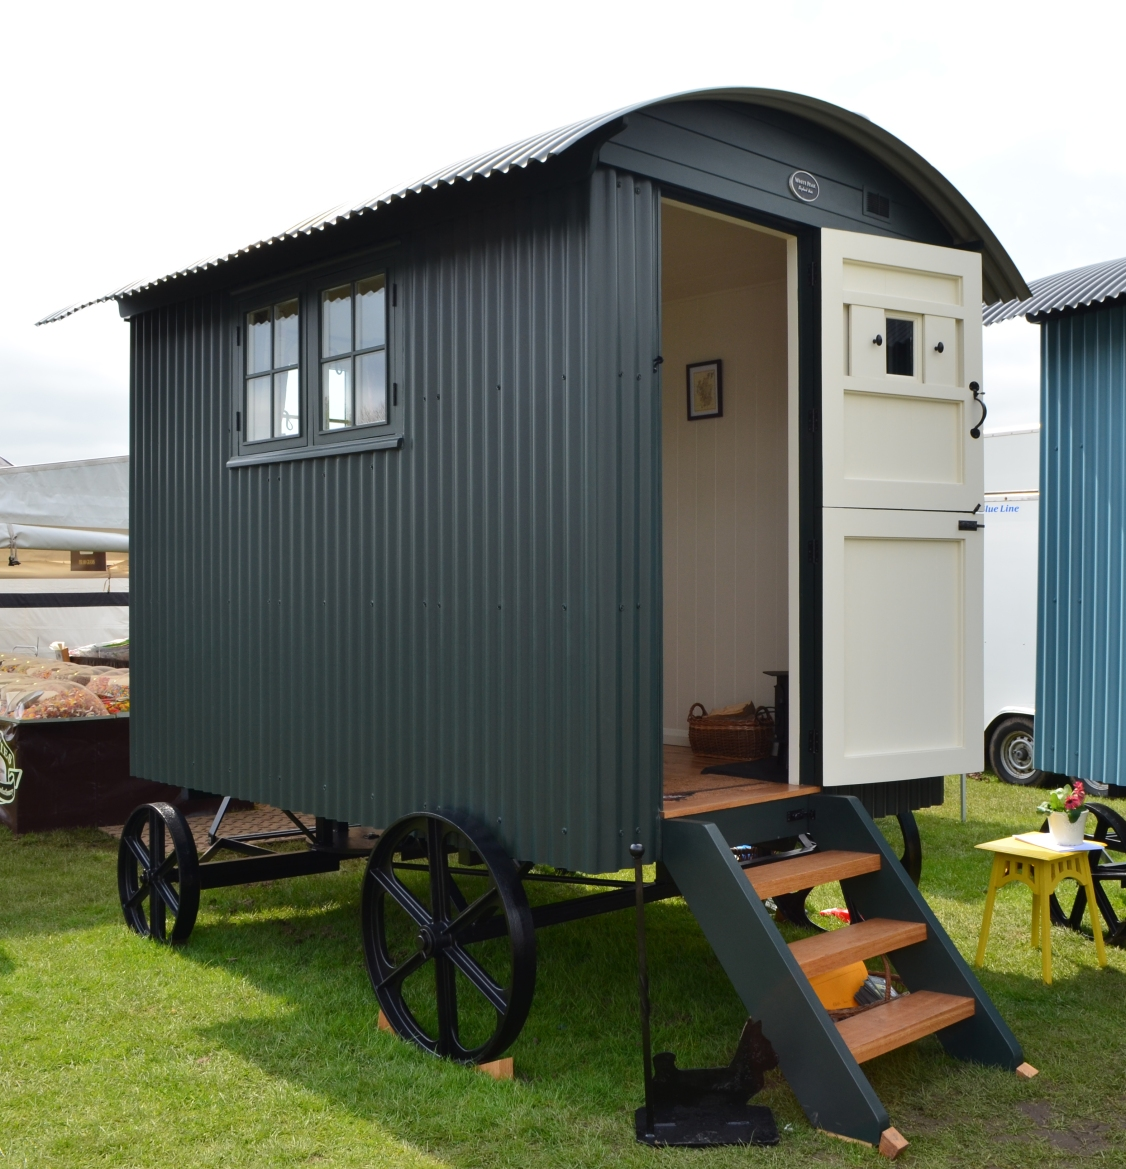 Garden office shepherd's hut